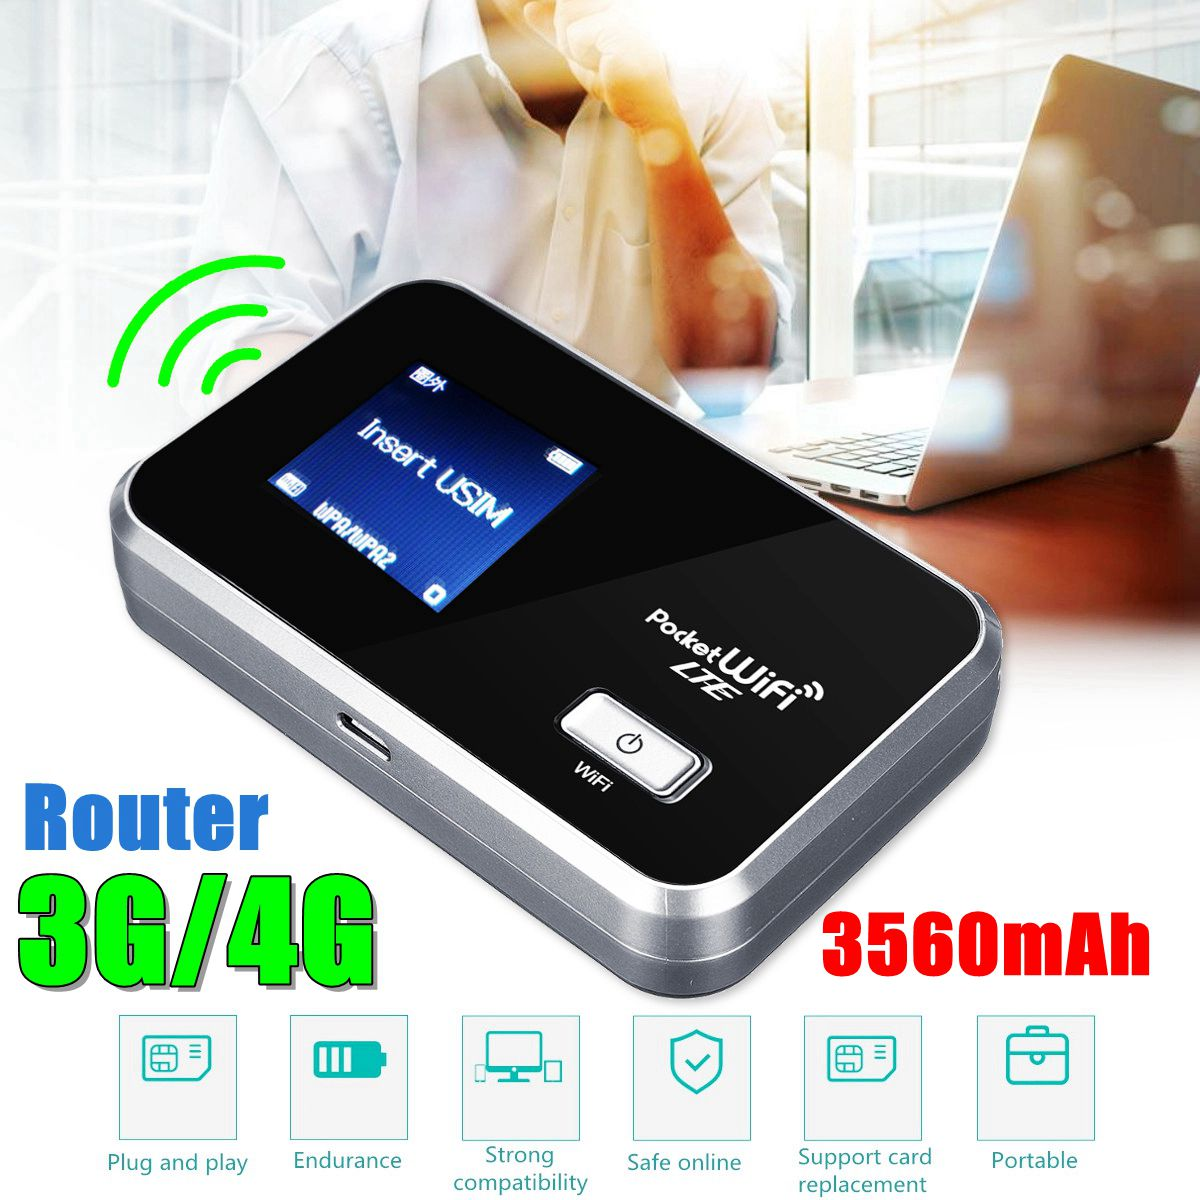 LEORY Router Portable WIFI 3g-2100/1700 4g-1700MHz Battery 3560mAh 4G LTE Cat4 Mobile Hotspot